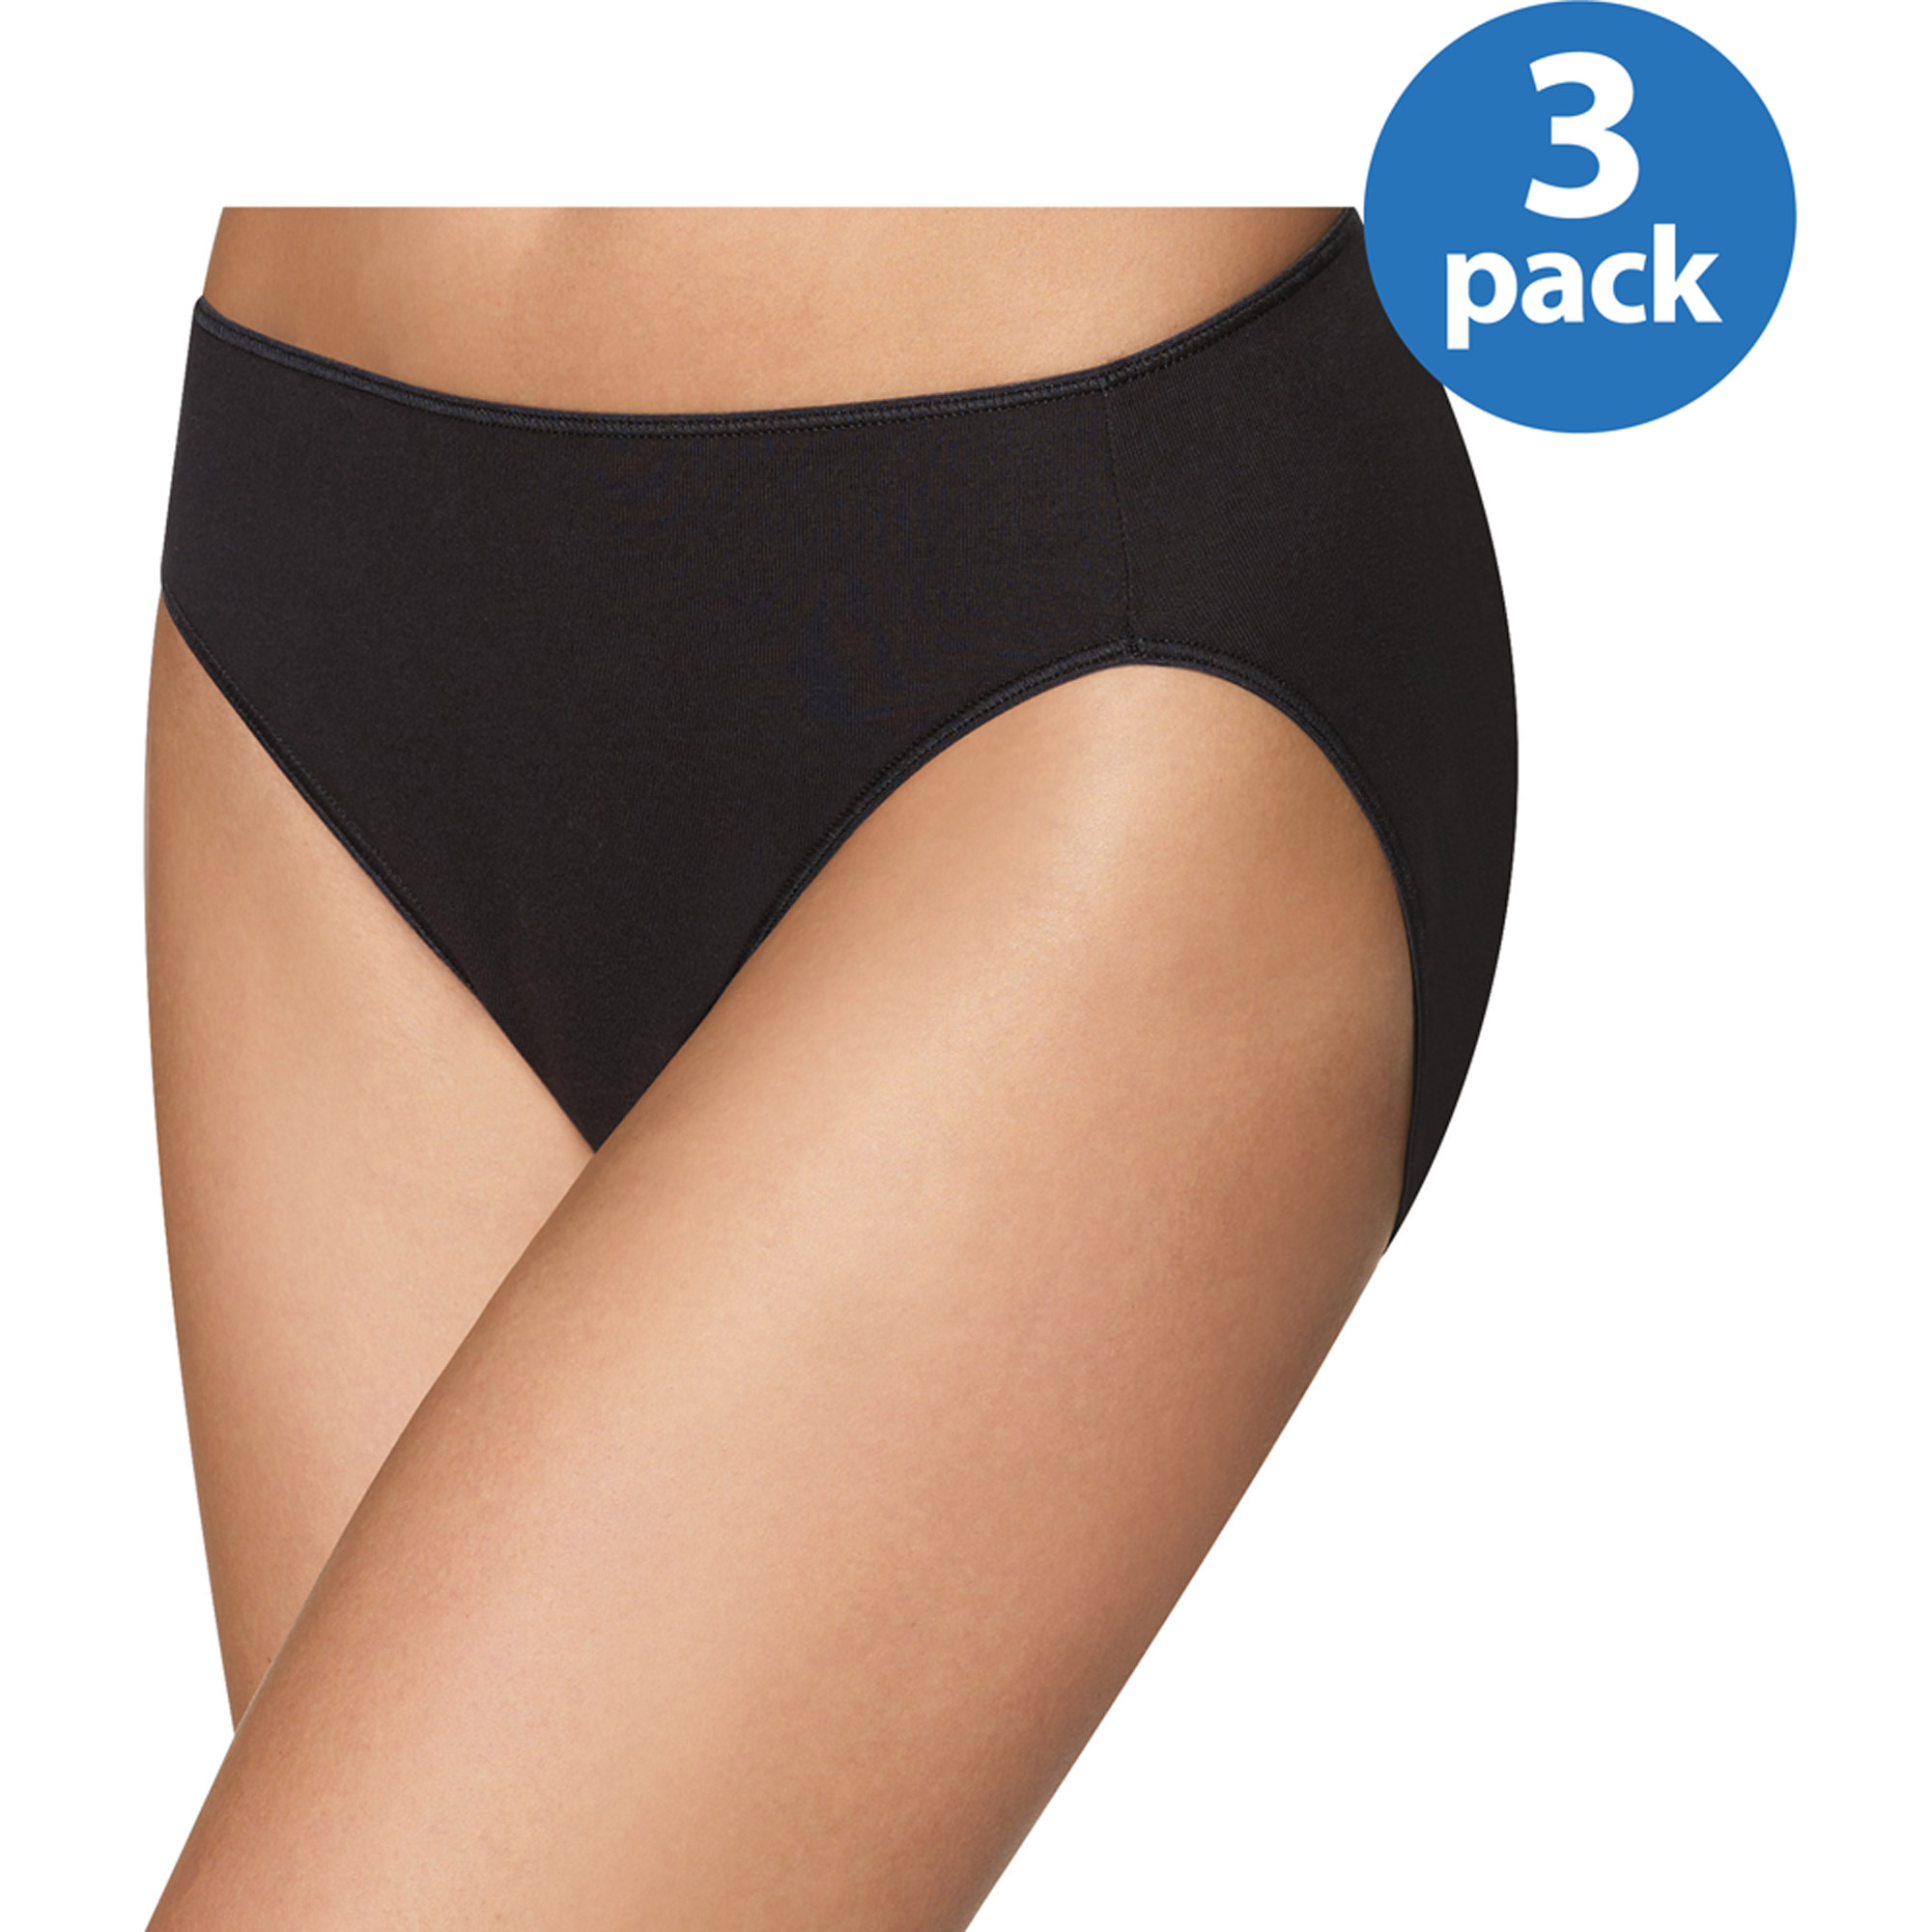 Hanes Women's Smooth Illusions Hi Cut Panties 3 Pack